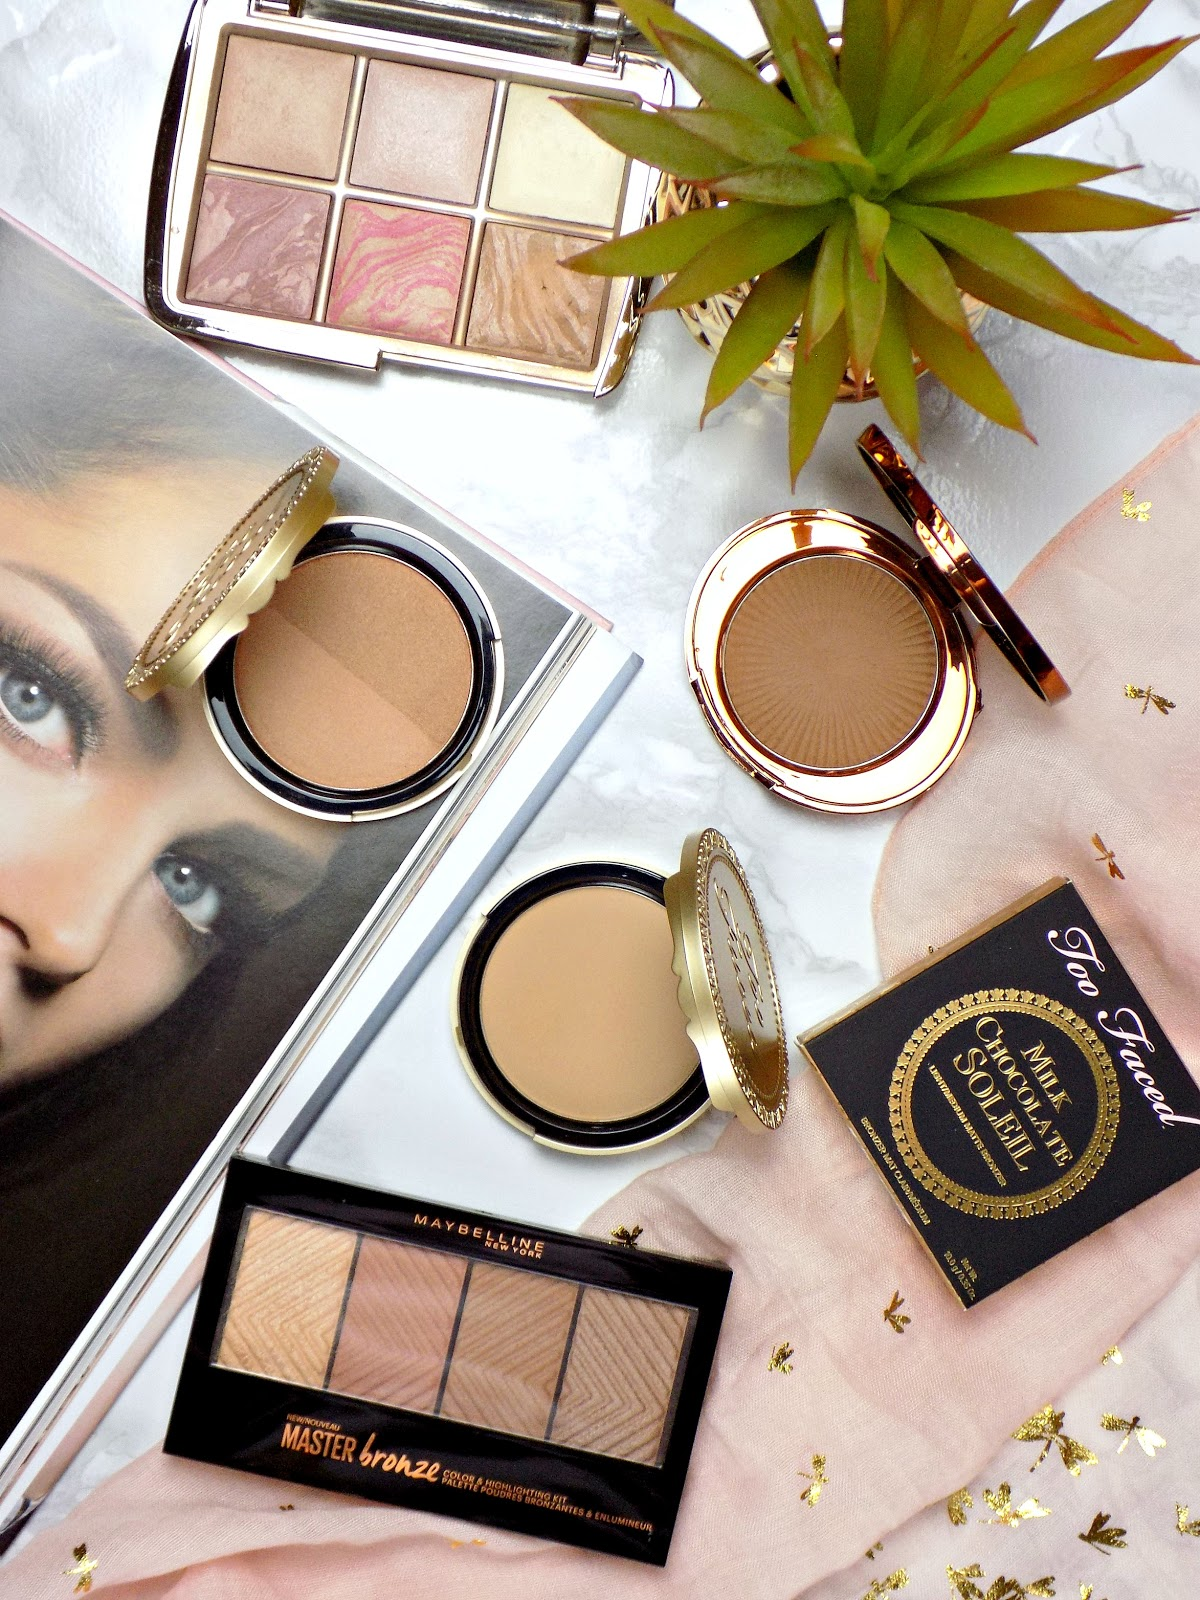 Best bronzers for Summer, Too Faced Chocolate Soleil Bronzer, Too Faced Sun Bunny